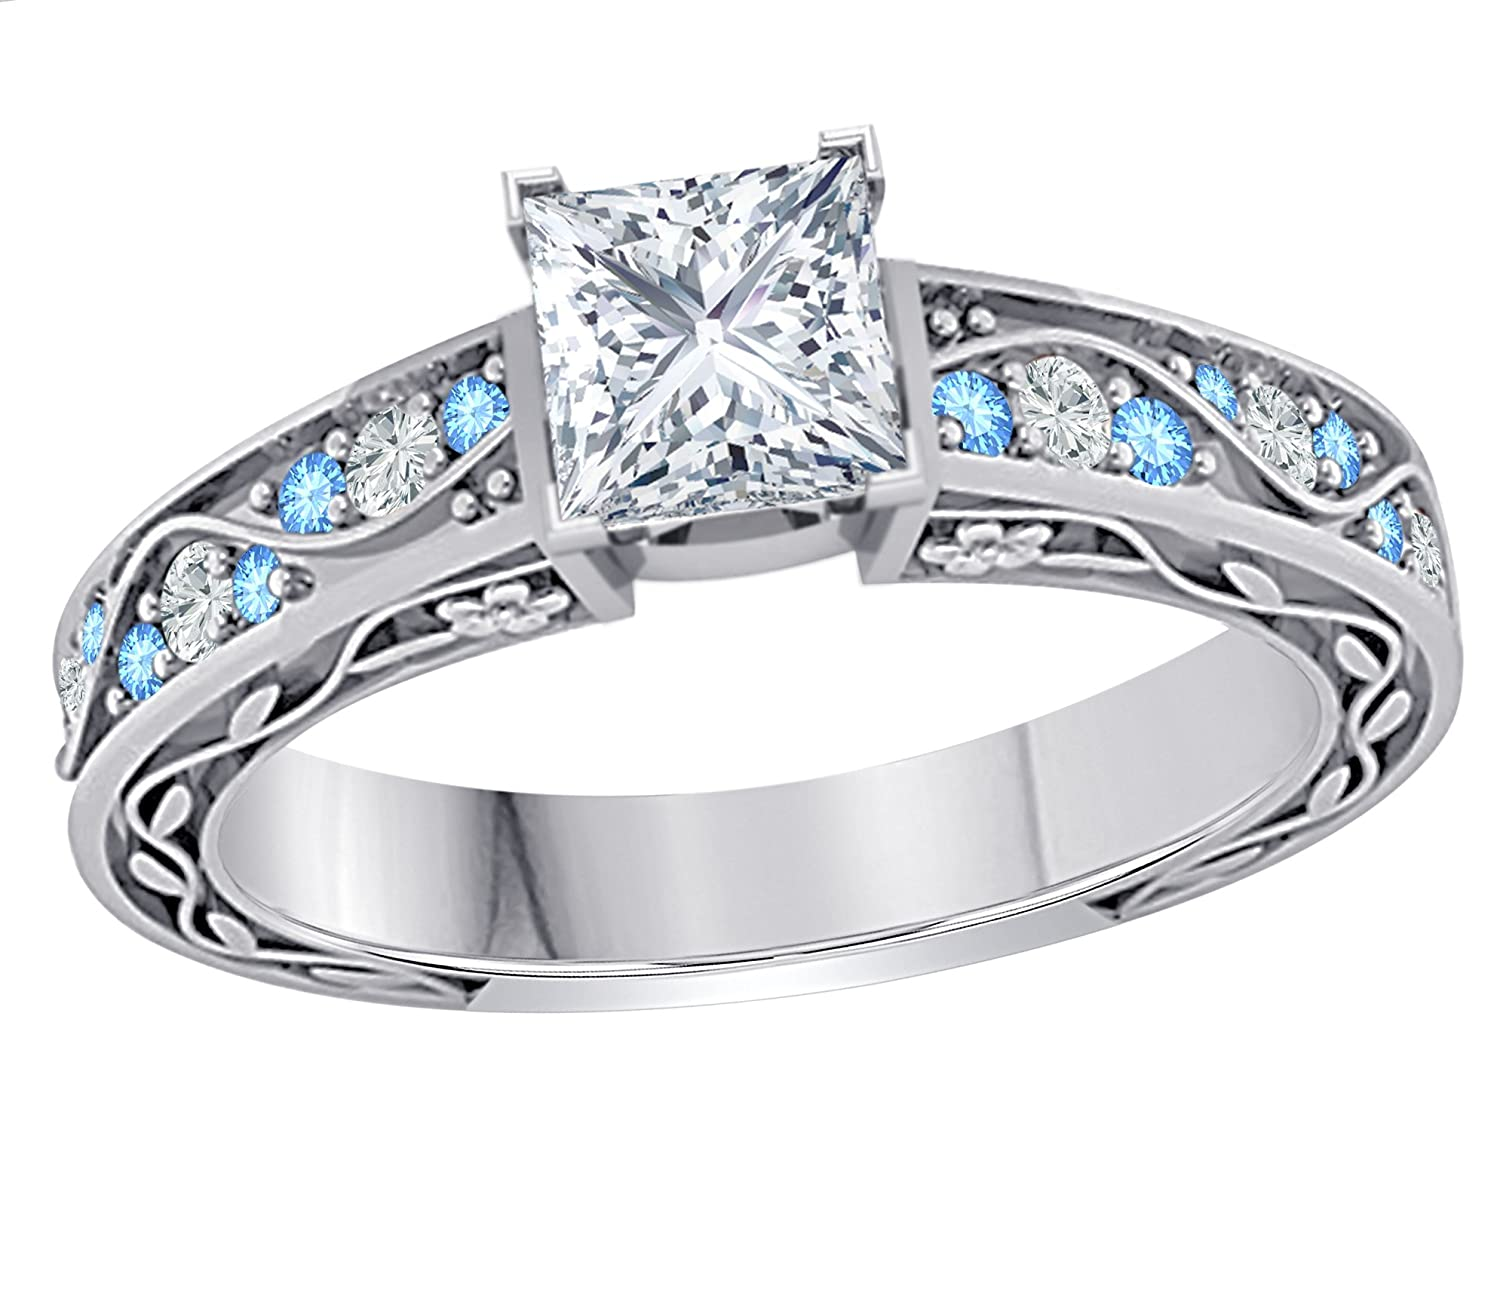 DreamJewels Stunning 1.00 CT Princess Cut Simulated CZ Diamond /& CZ Blue Topaz .925 Sterling Silver Plated Flower Look Cute Engagement /& Wedding Ring for Womens